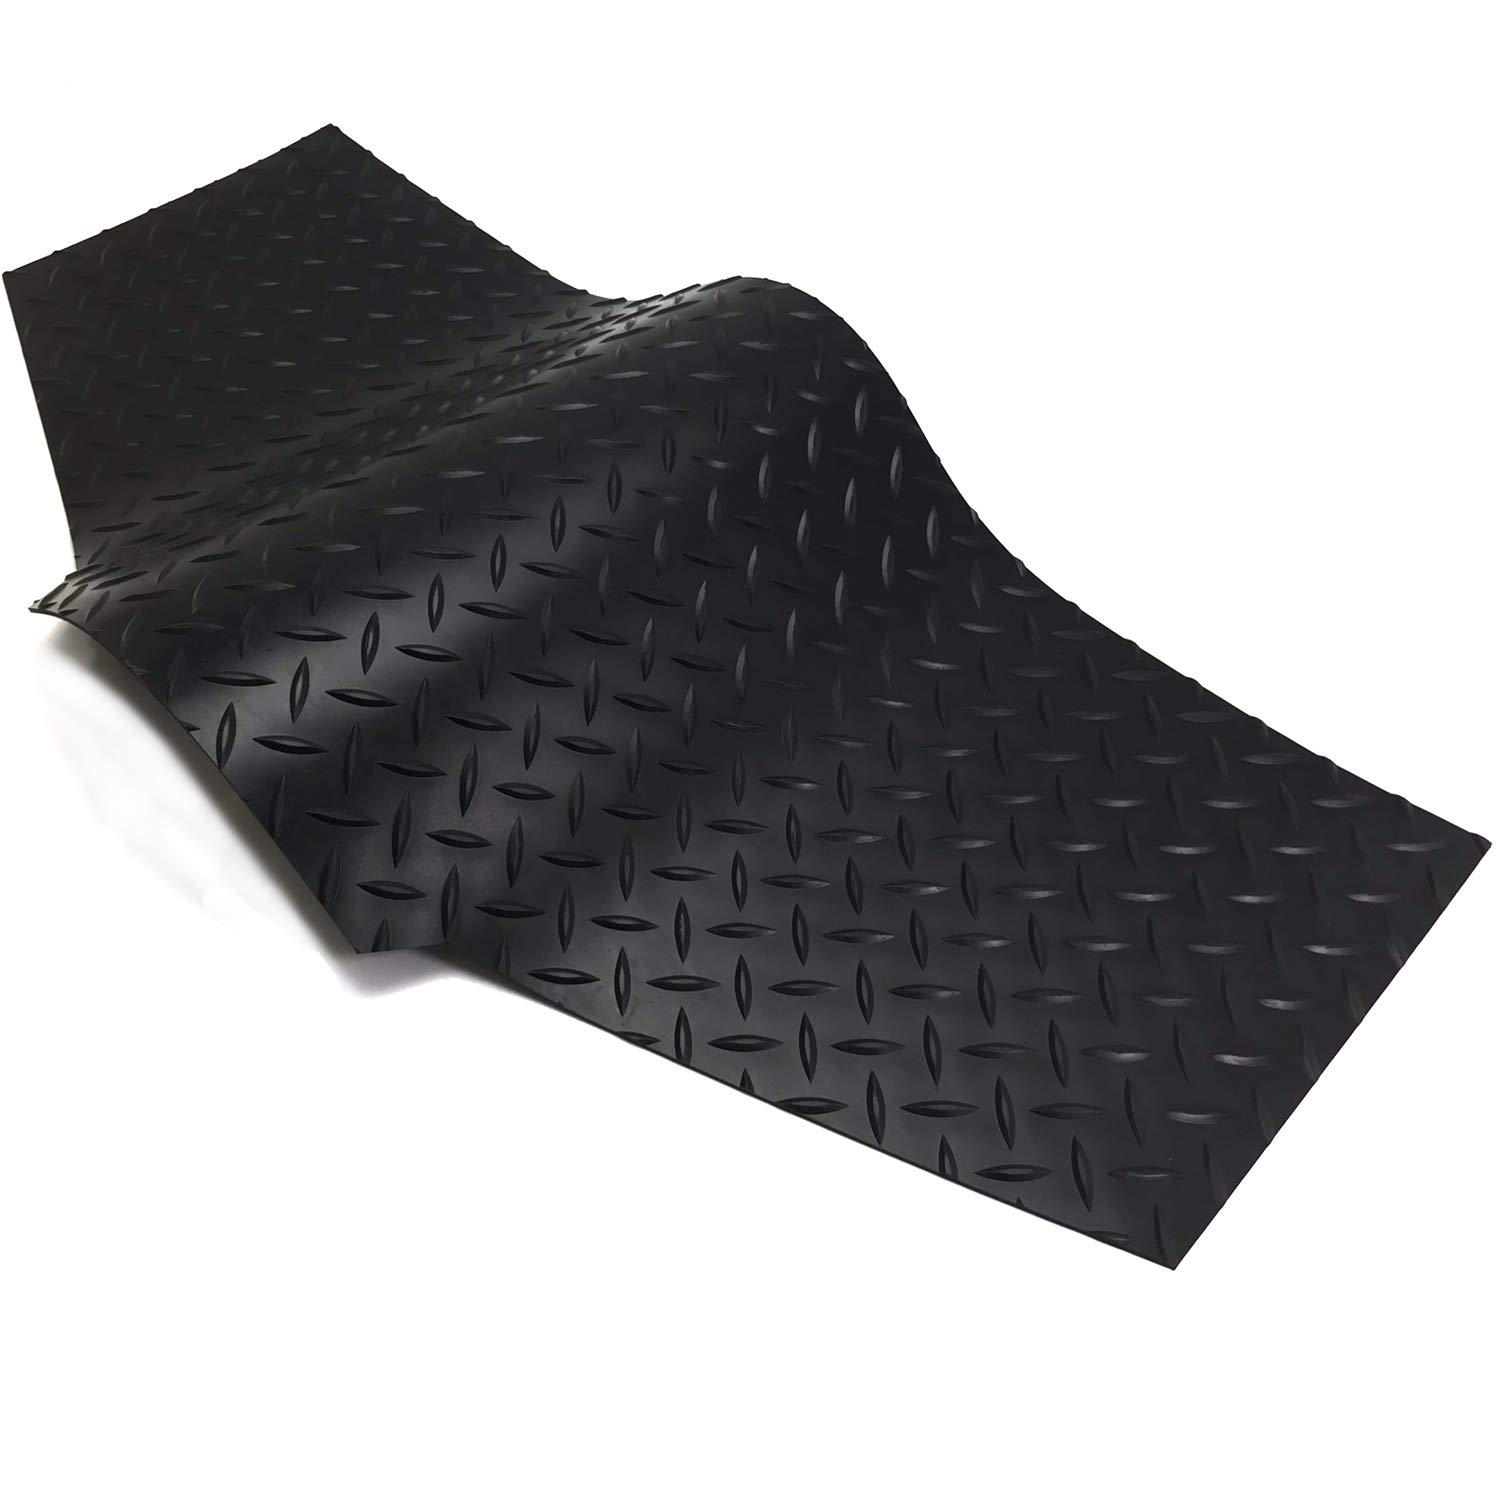 Automotive Accessories Interior upgrade4cars Universal Car Mats Black Set of Non Slip Auto Floor Carpet Mat